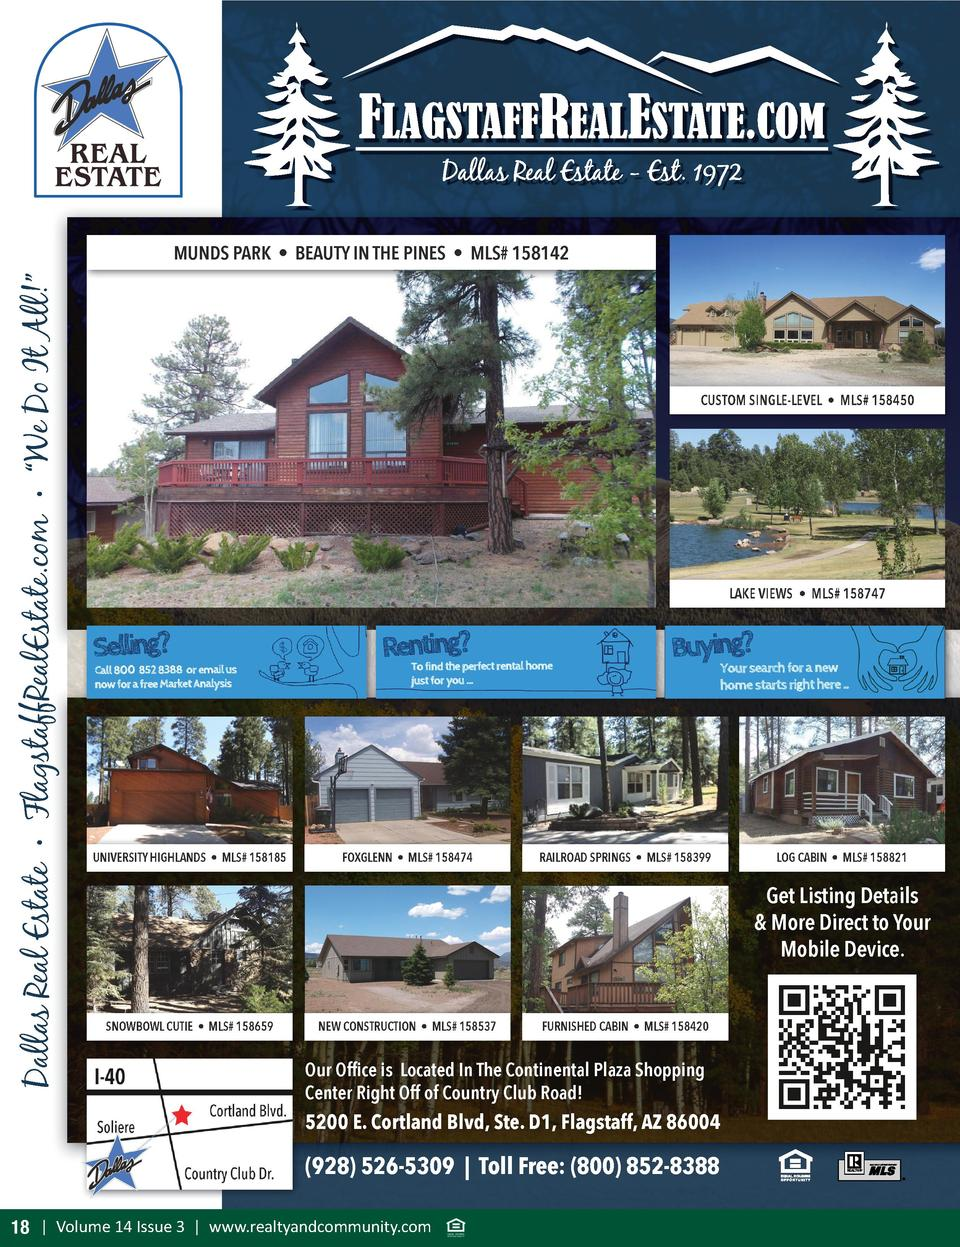 Dallas Real Estate     FlagstaffRealEstate.com        We Do It All      MUNDS PARK     BEAUTY IN THE PINES     MLS  158142...